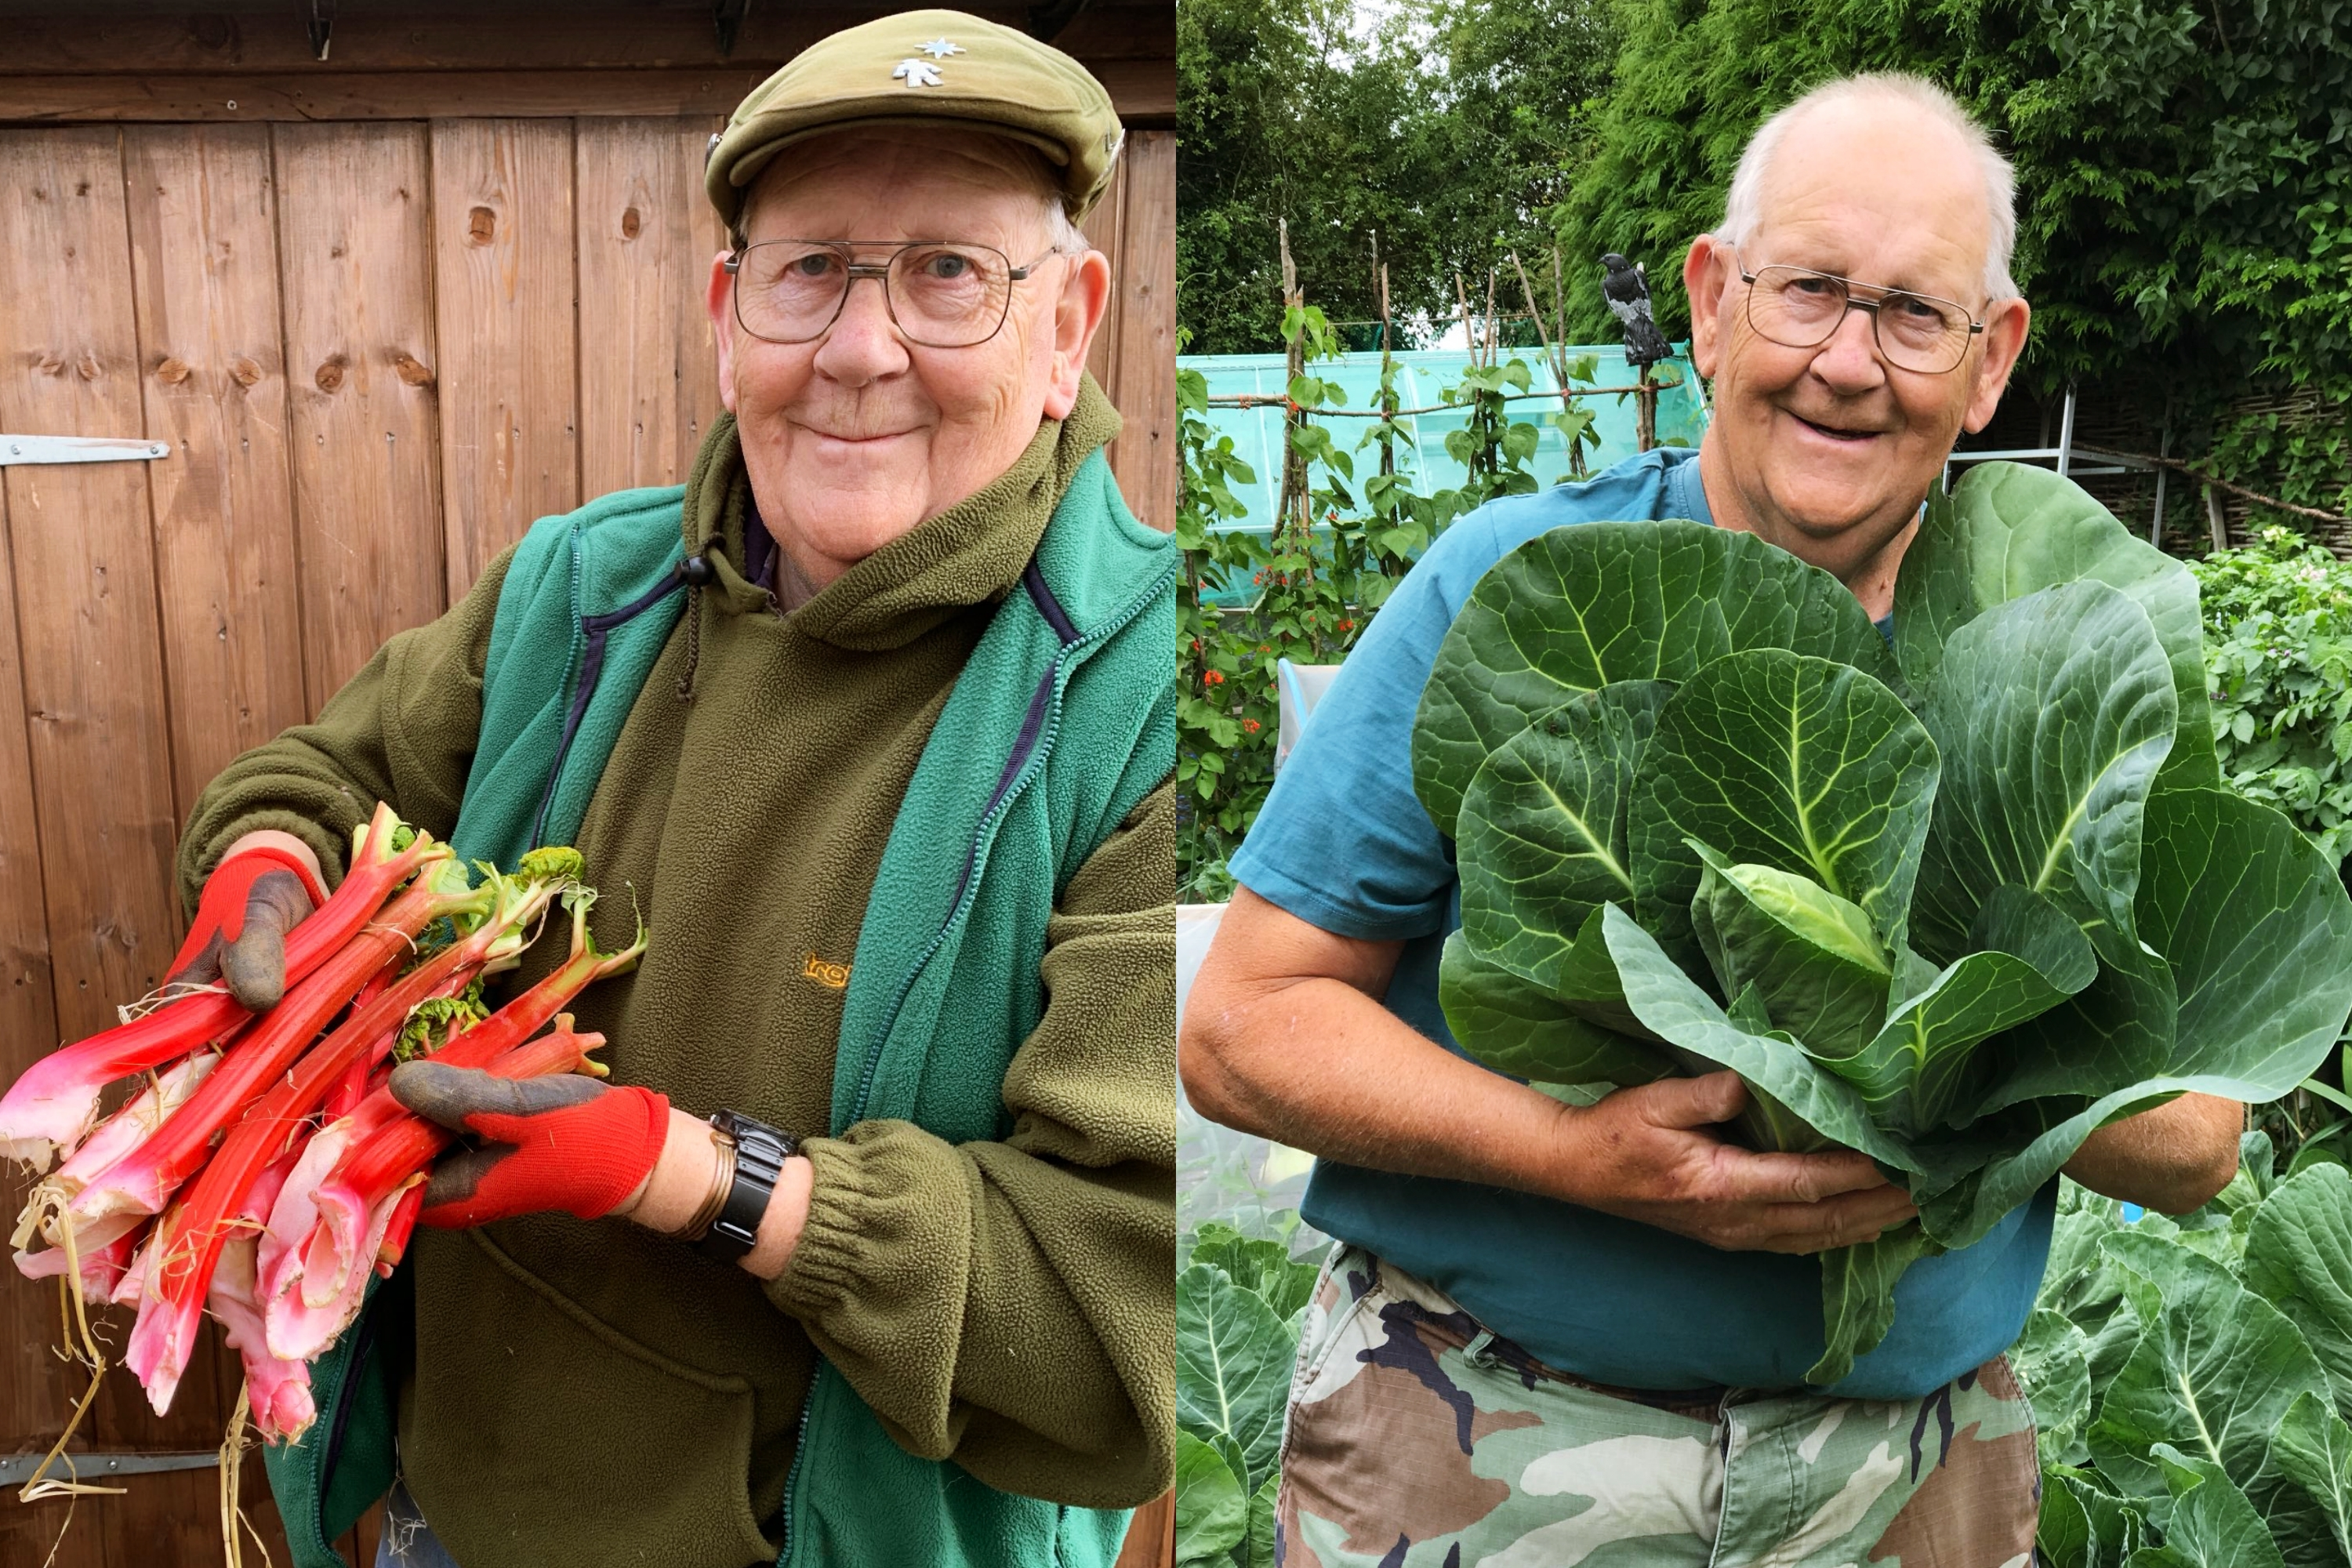 Diptych of a smiling older man holding large handfuls of fresh vegetables and fruits in his garden.